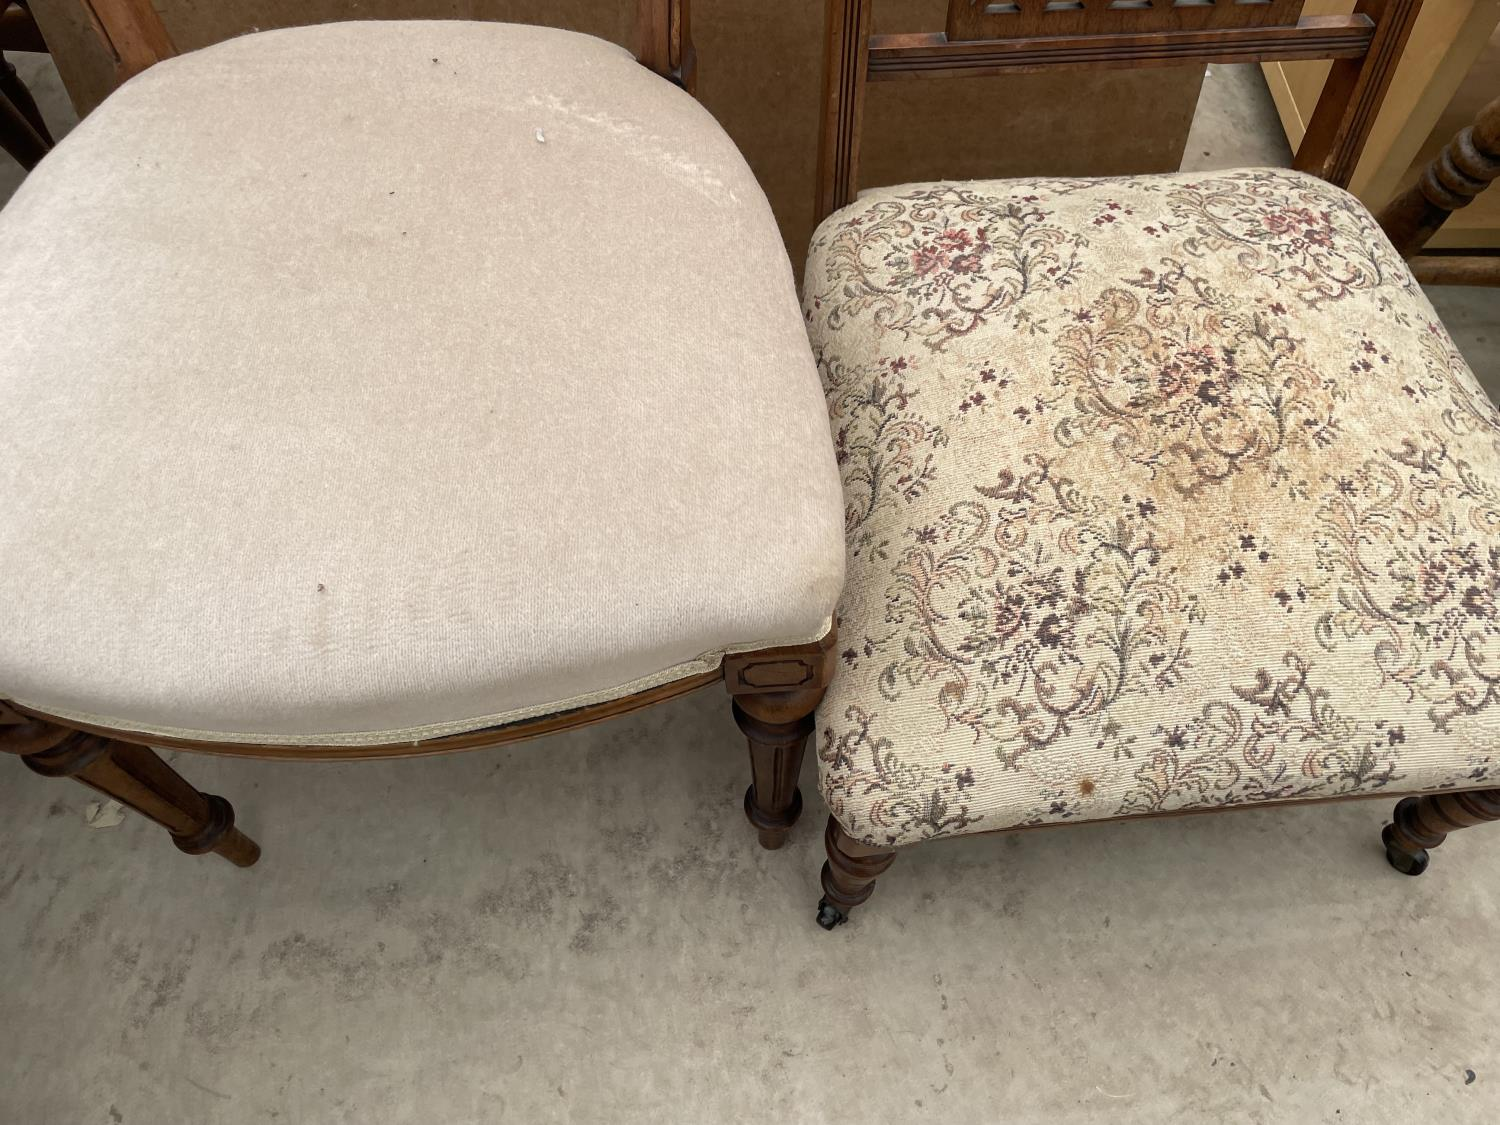 A SET OF FIVE MID 20TH CENTURY STYLE DINING CHAIRS WITH WHALE FIN BACKS - Image 9 of 10